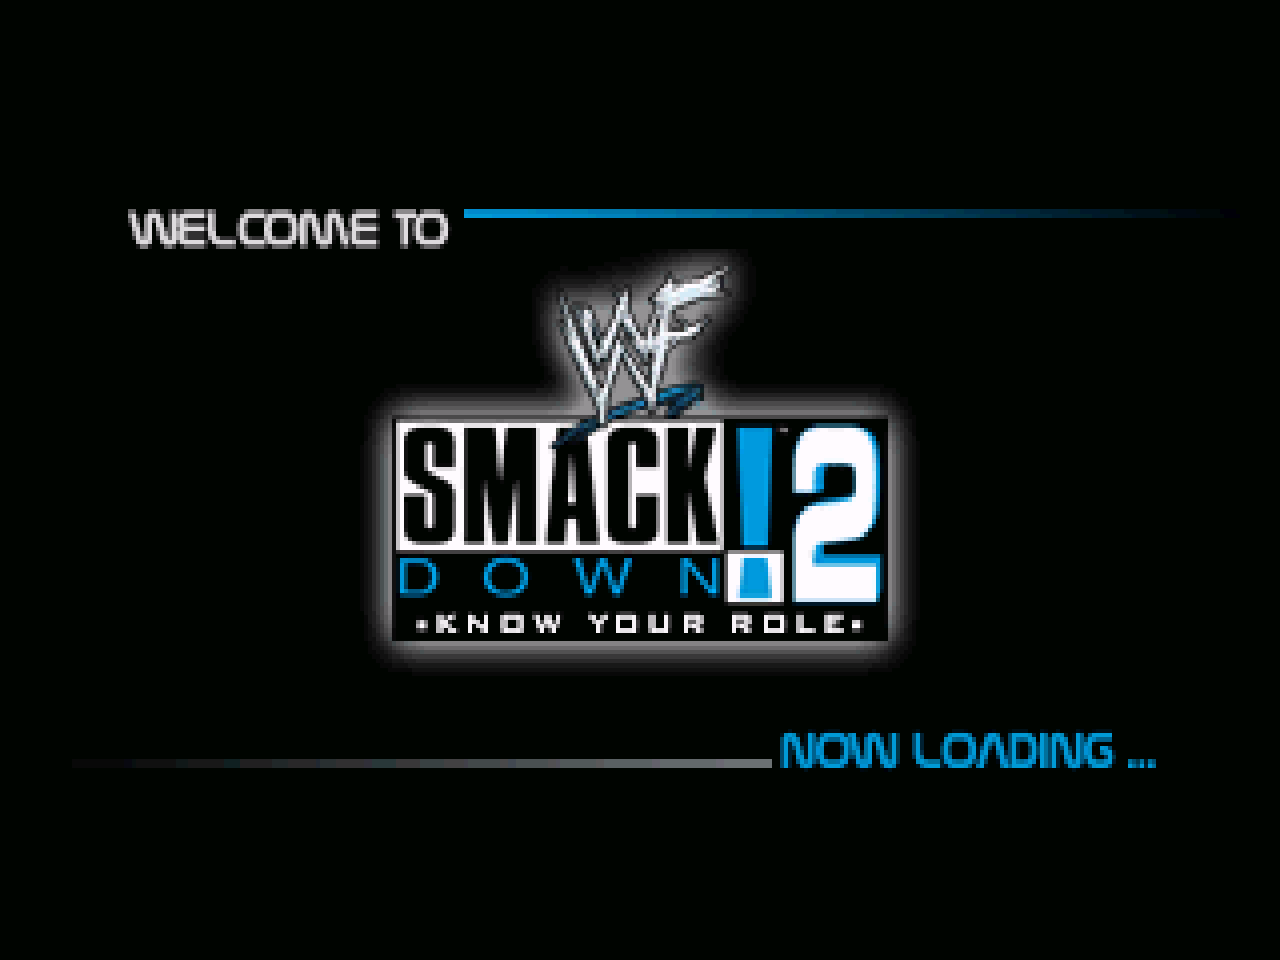 https://s3.eu-west-3.amazonaws.com/games.anthony-dessalles.com/WWF SmackDown 2 Know Your Role PS1 2020 - Screenshots/WWF SmackDown 2 Know Your Role-201127-183610.png